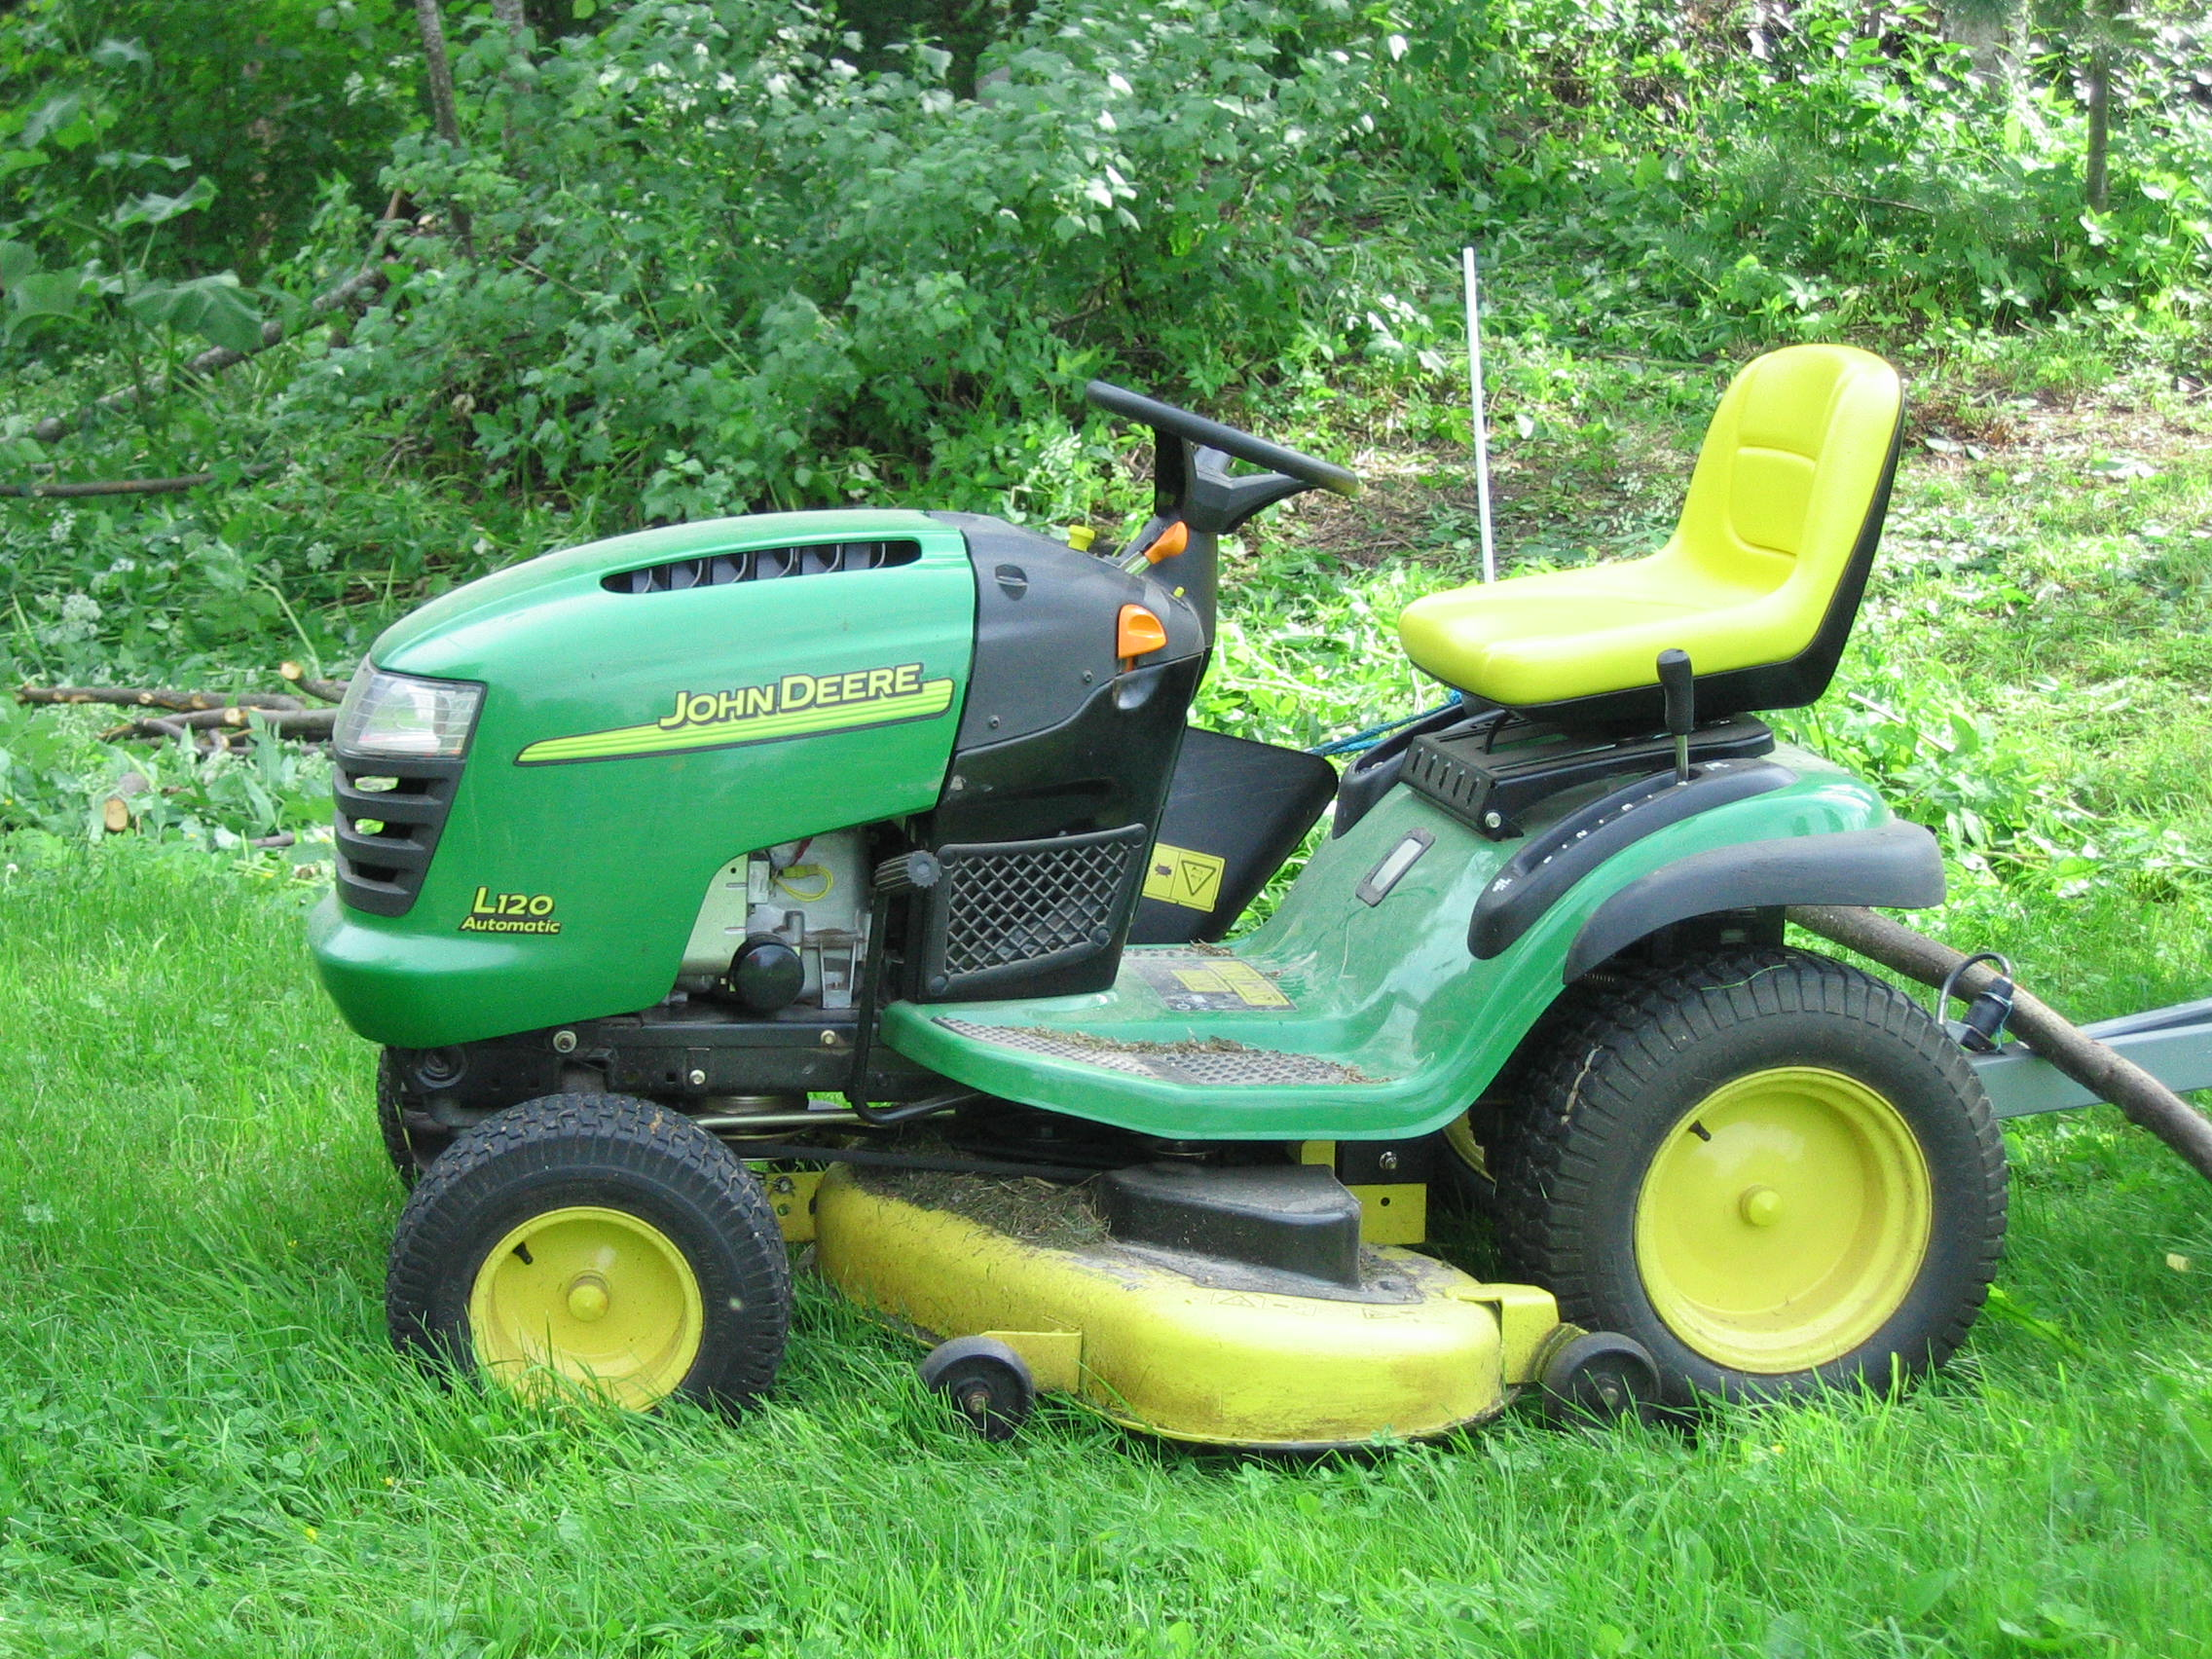 Description John Deere lawn mower.JPG